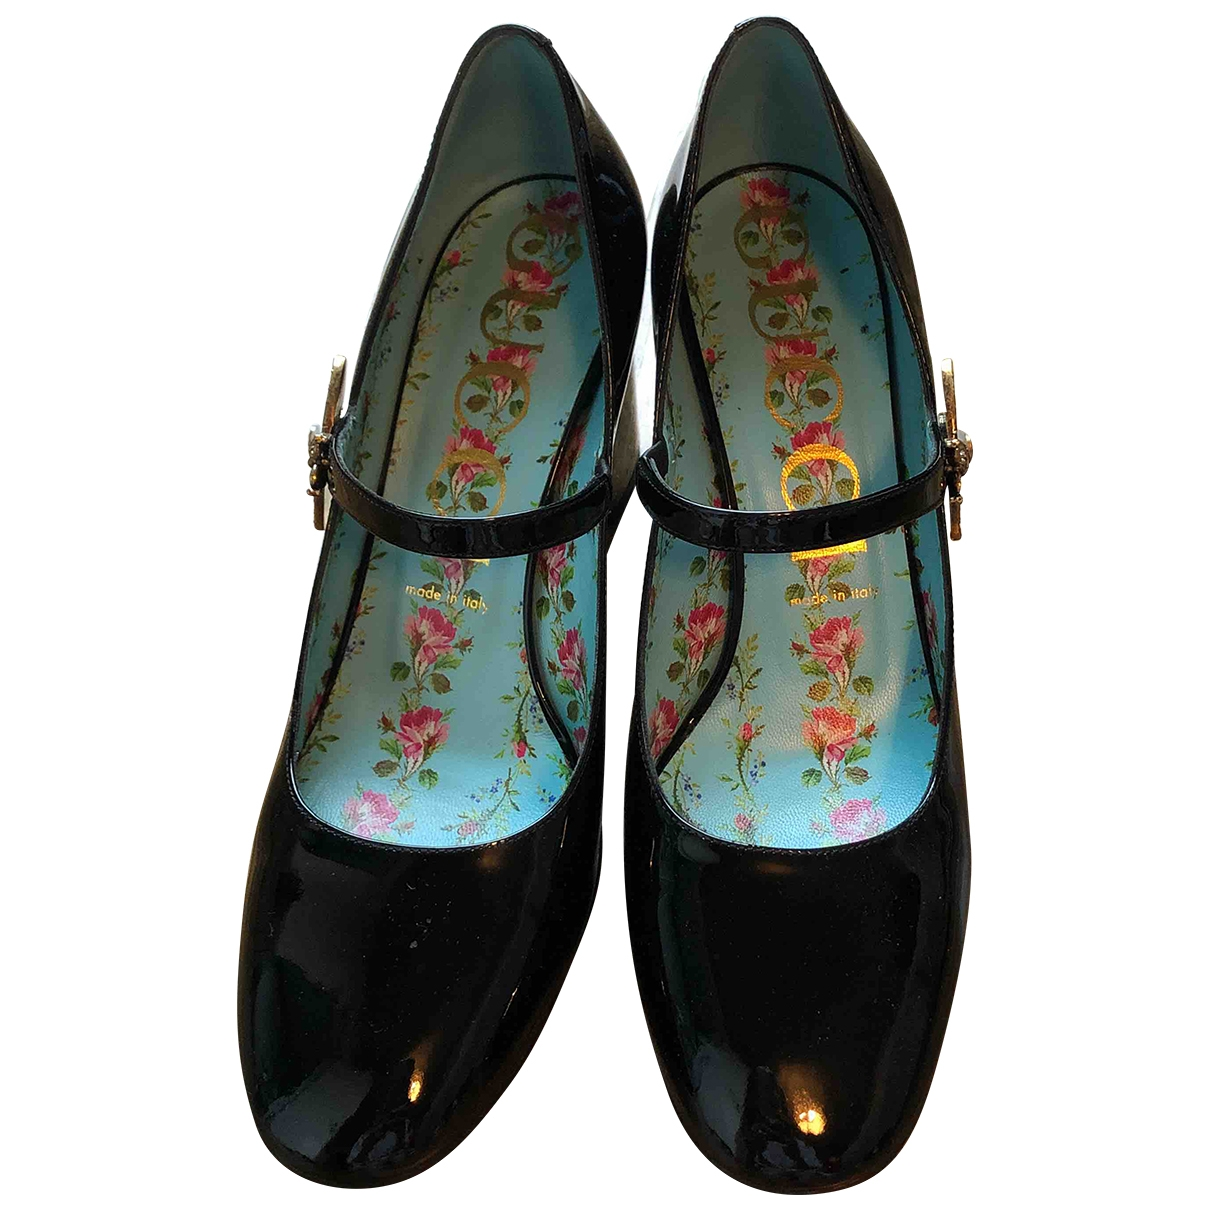 Gucci \N Black Patent leather Heels for Women 40 EU